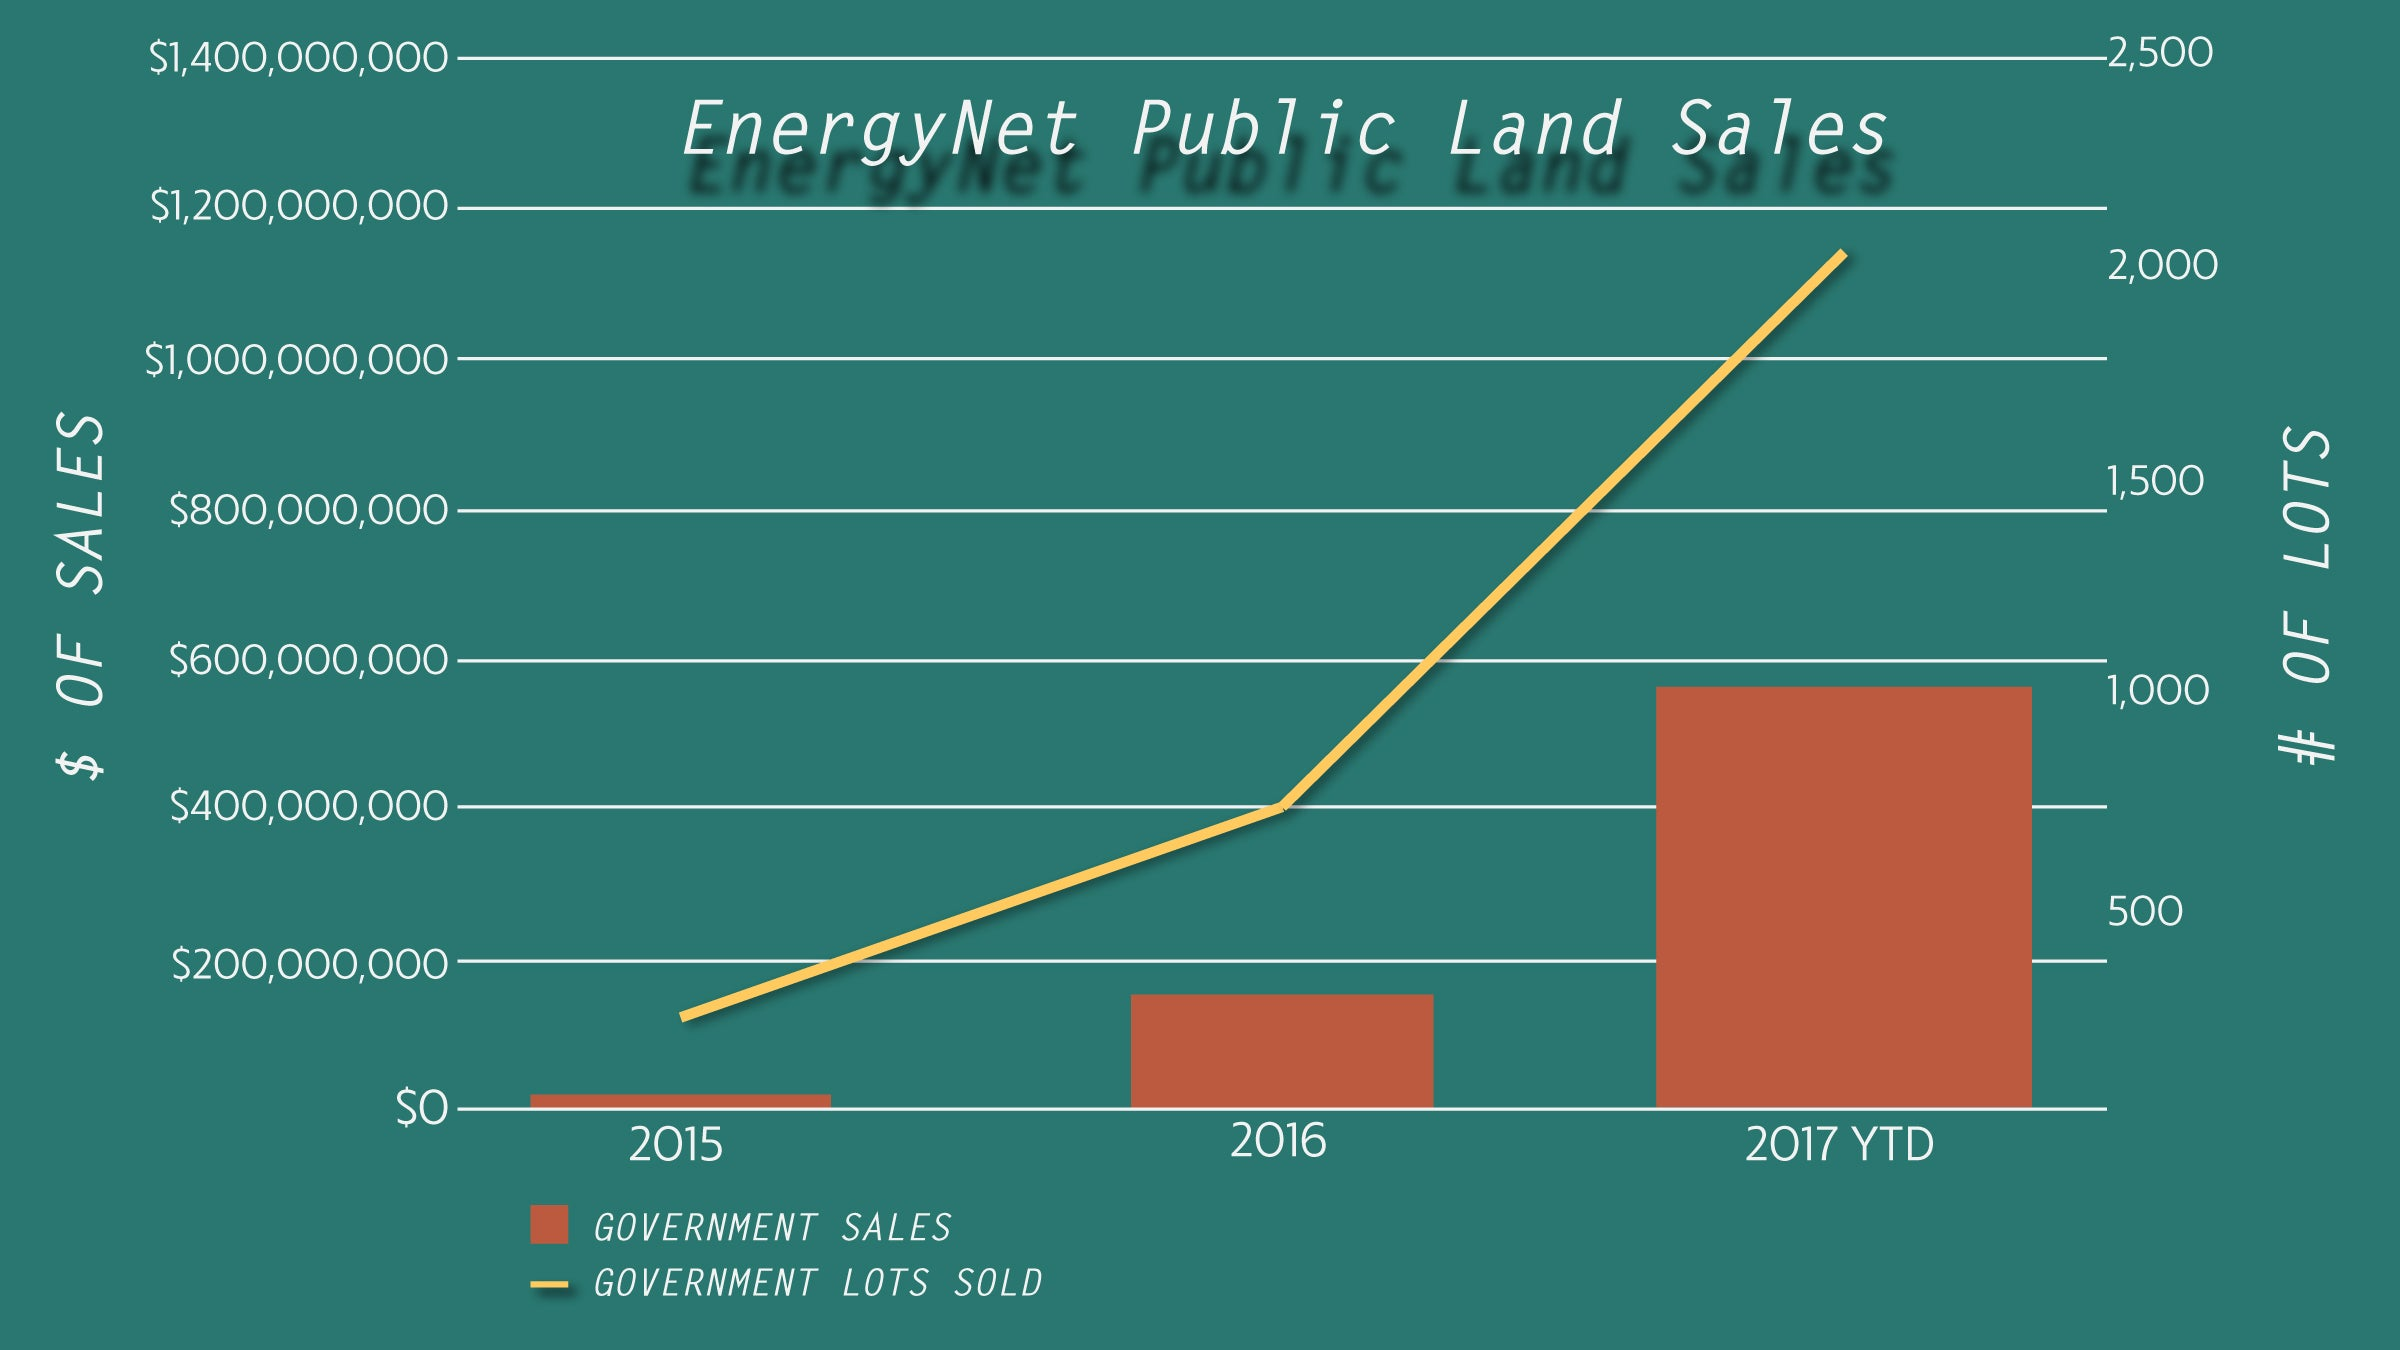 Data source: EnergyNet 2017 Q4 Marketplace Quarterly business report. Click to enlarge.